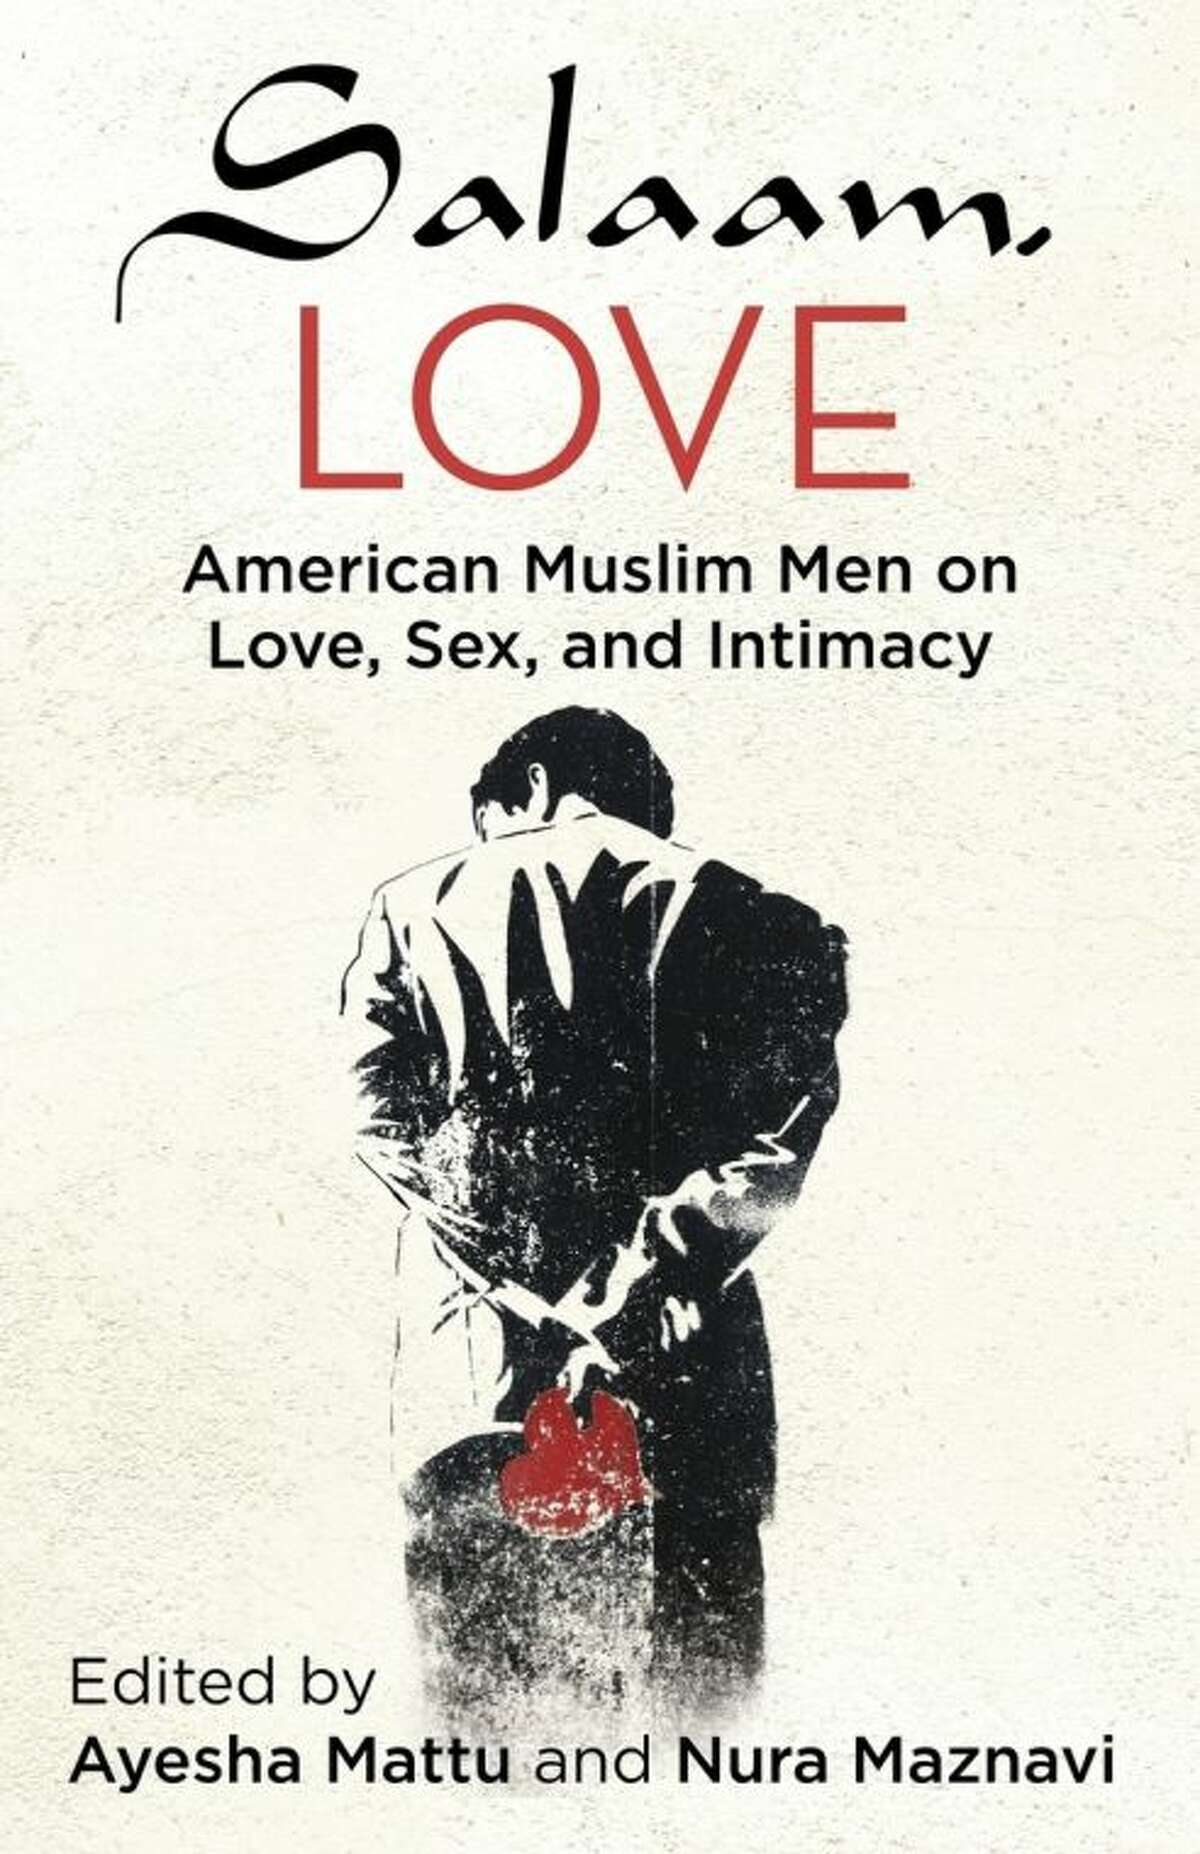 This book cover image released by Beacon Press shows